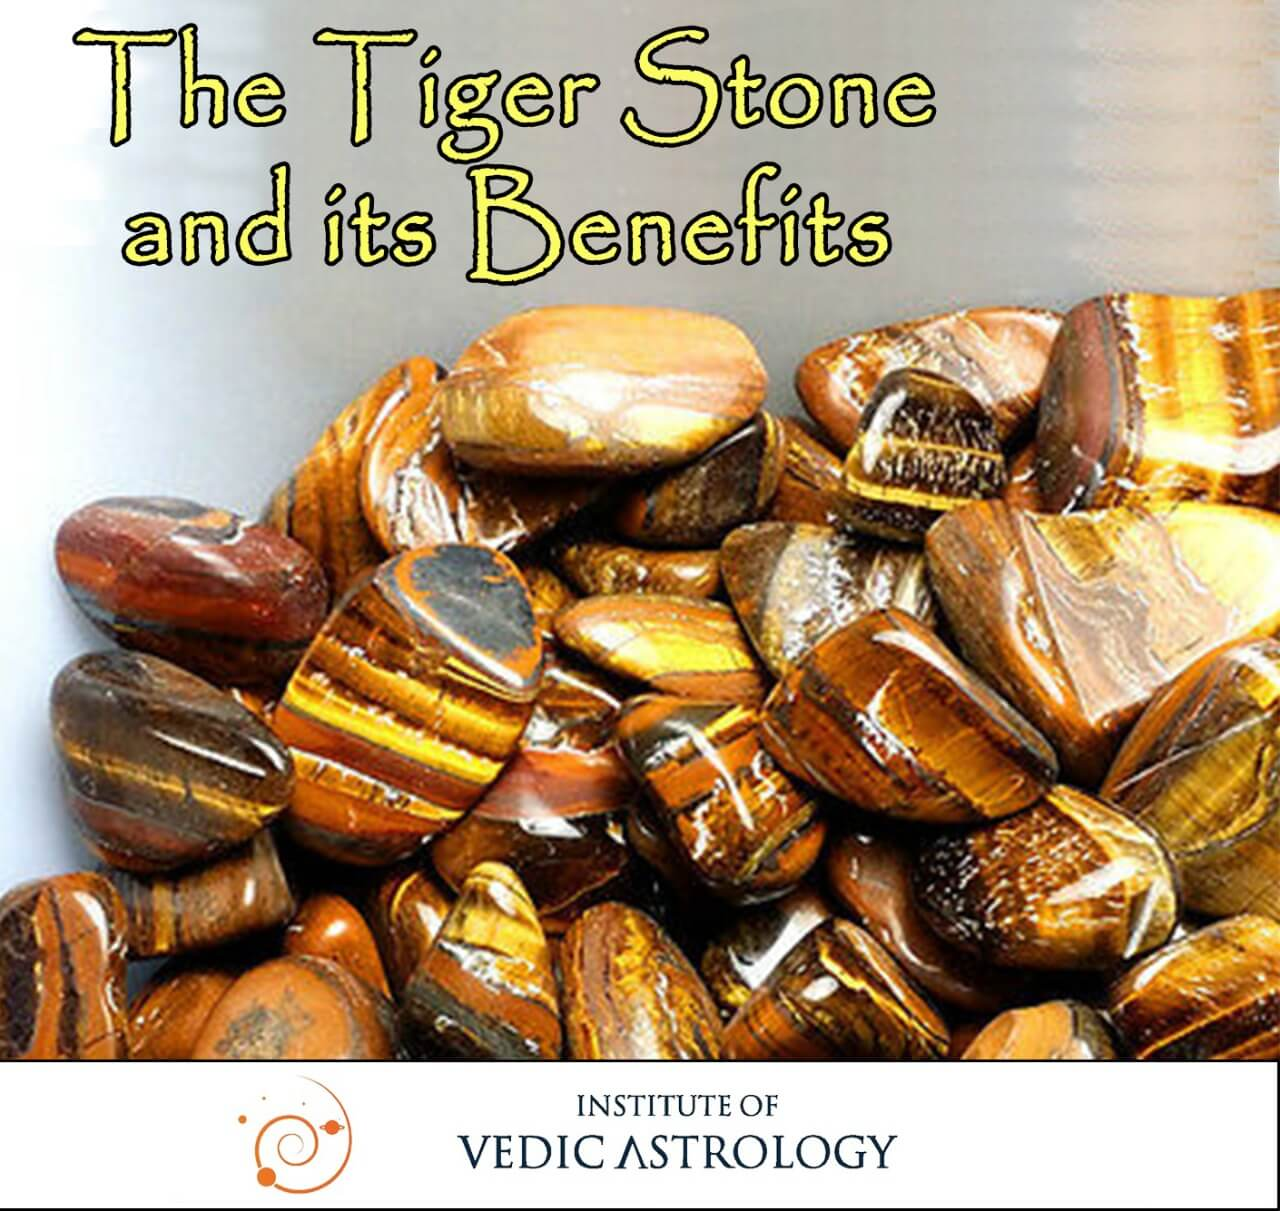 The Tiger Stone and its benefits